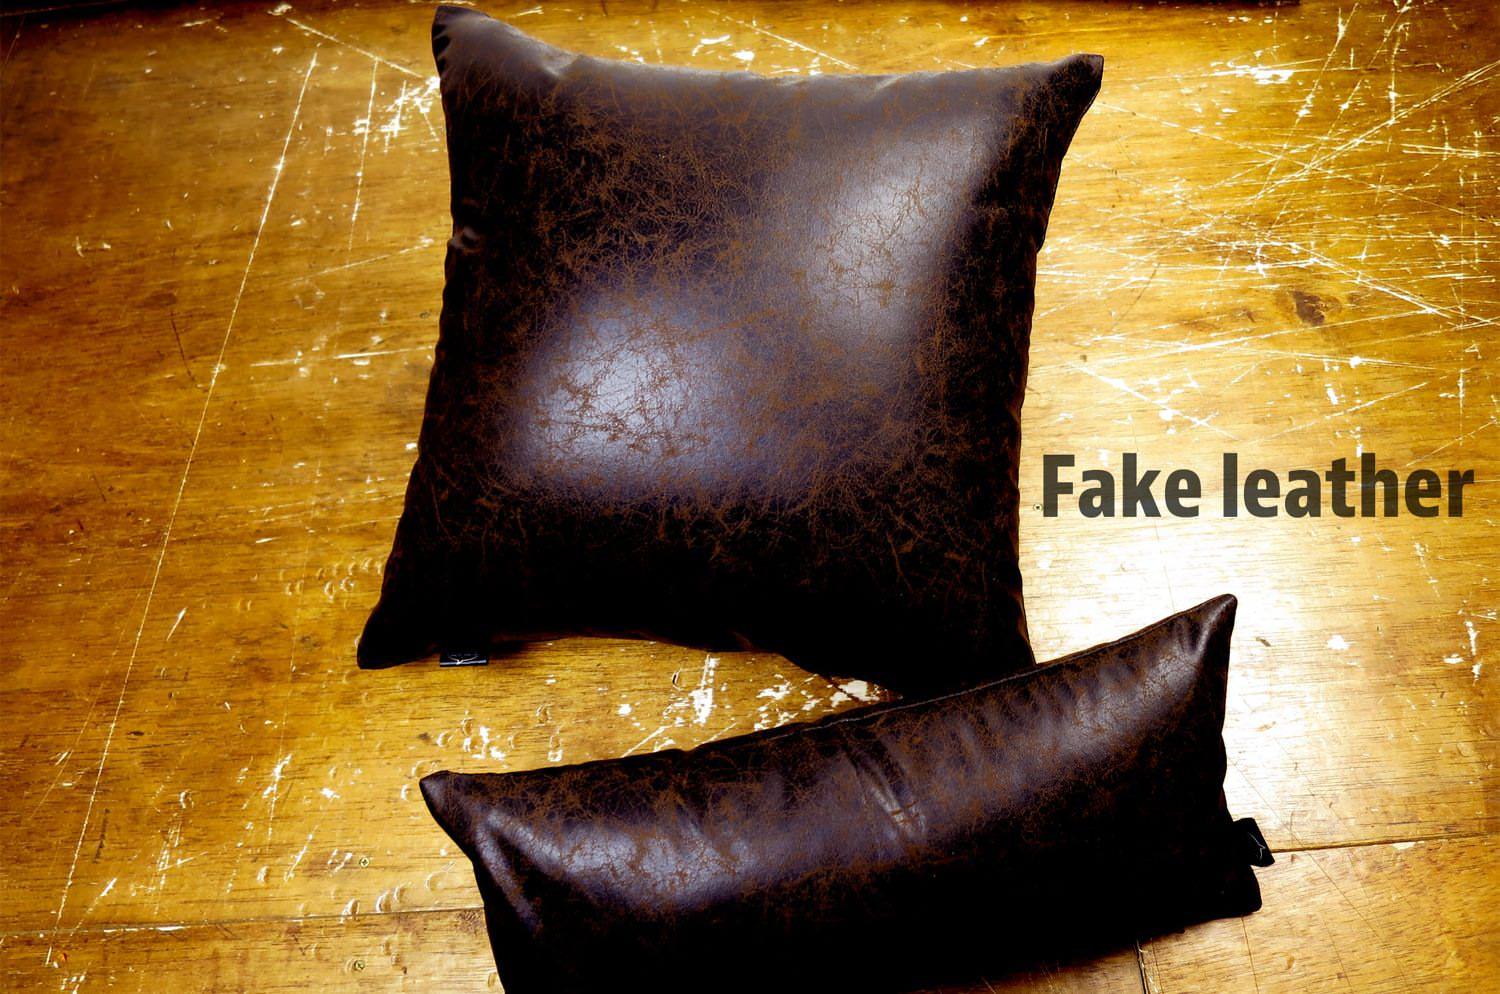 fakeleather-db-scratch4520